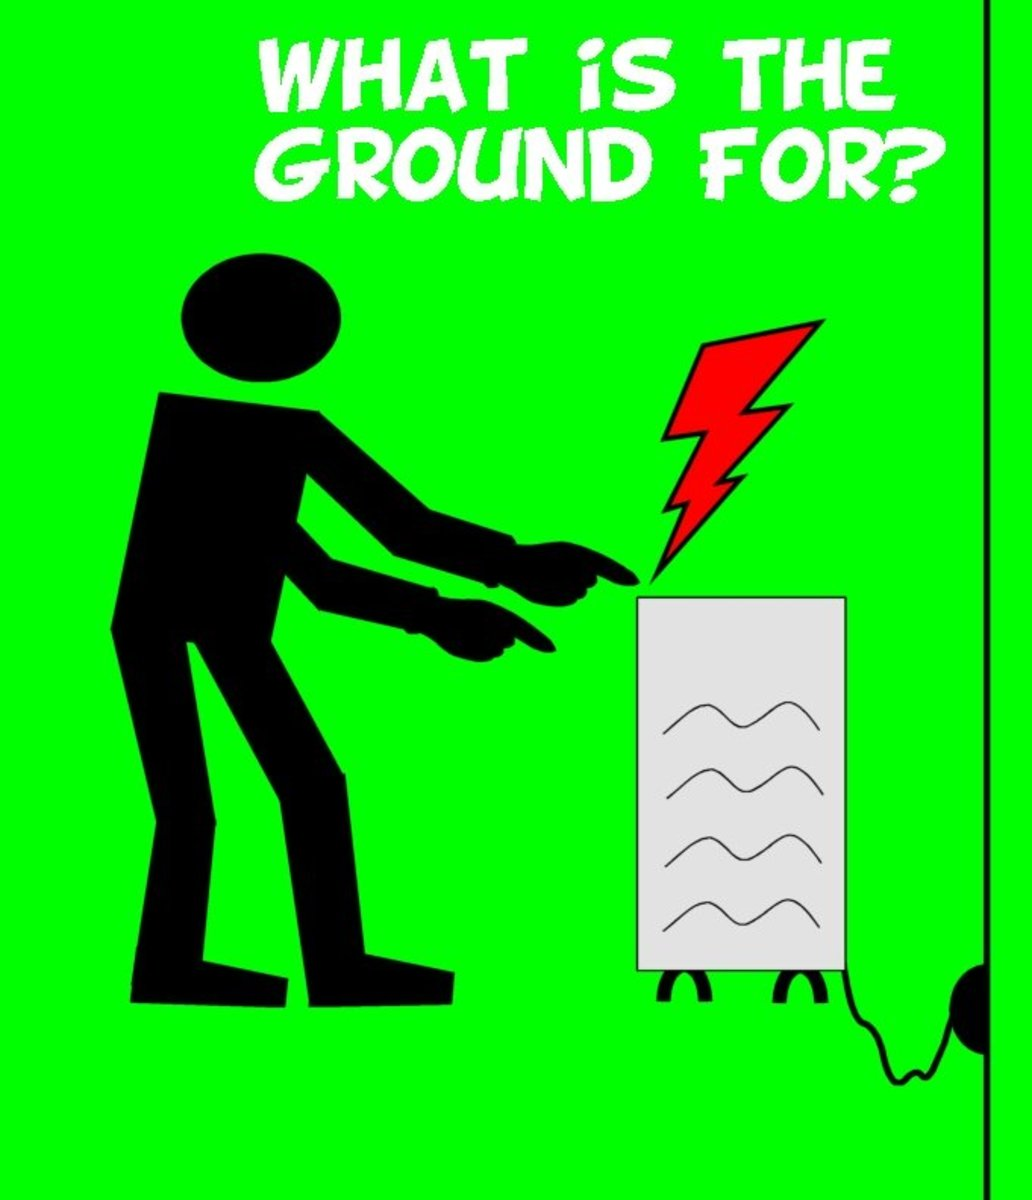 What is the ground wire for?